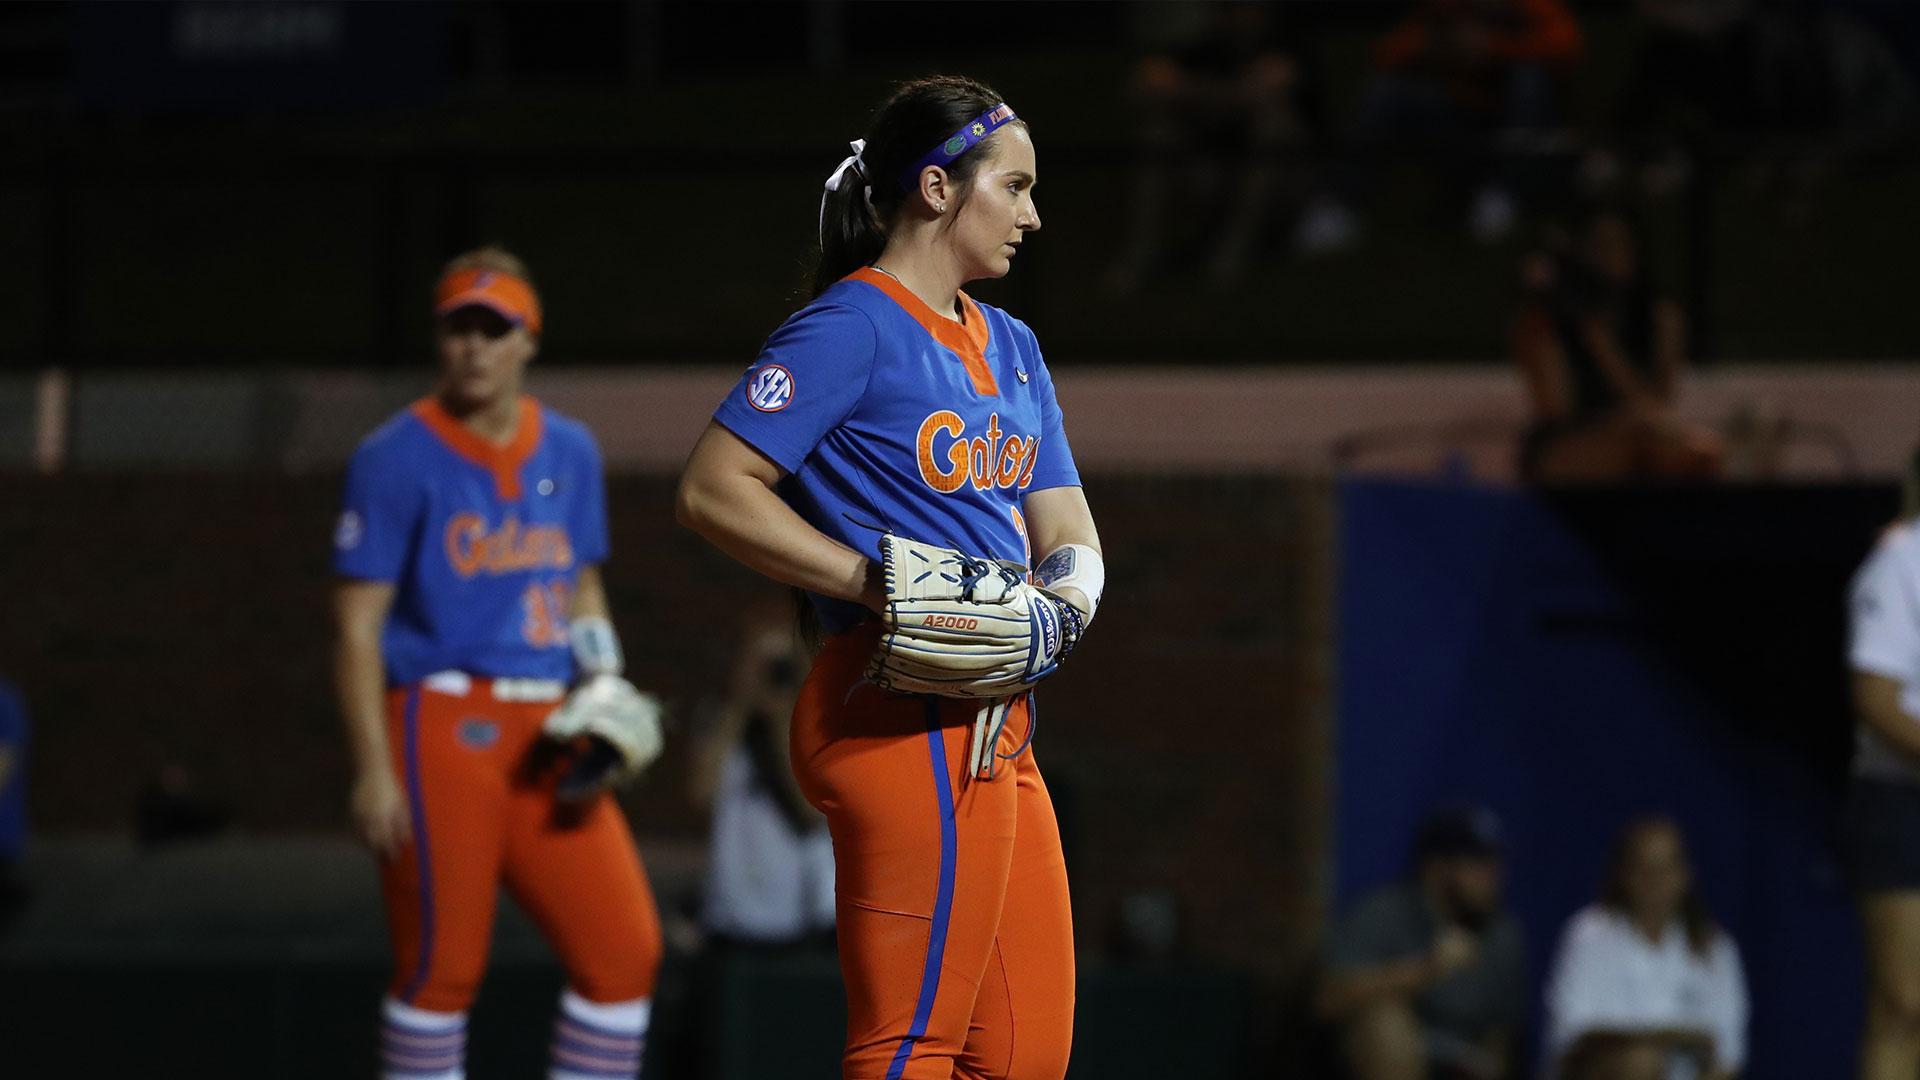 Elizabeth Hightower Softball Florida Gators